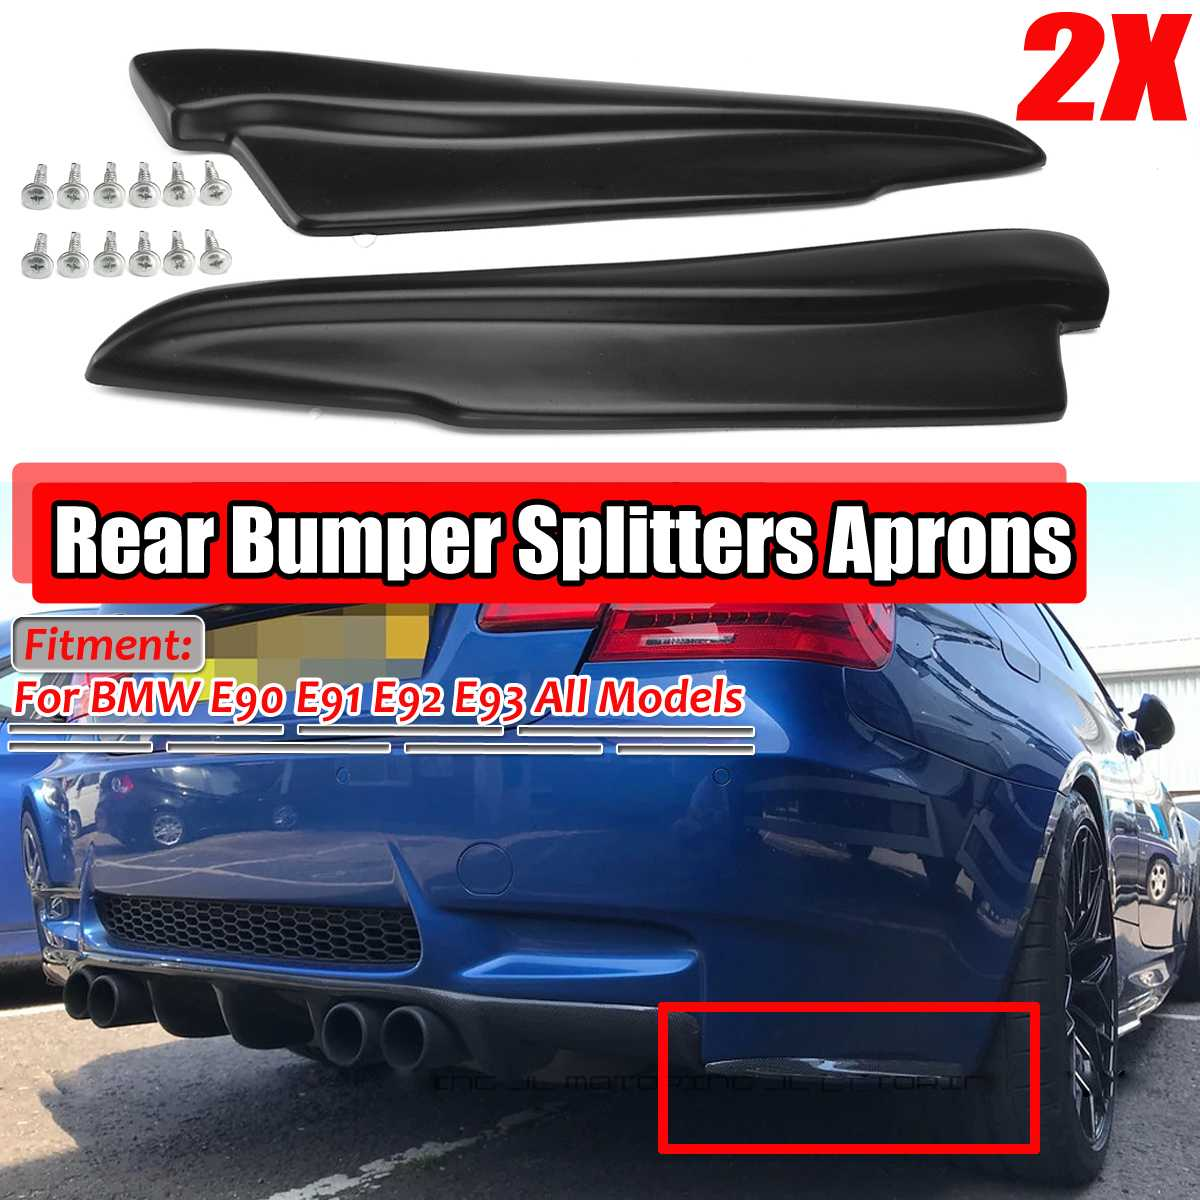 A Pair 52cm Universal Car <font><b>Rear</b></font> Bumper Lip <font><b>Diffuser</b></font> Guard Deflector For BMW E90 E91 E91 E92 For <font><b>AUDI</b></font> A6 <font><b>A7</b></font> A8 For Ford For Focus image